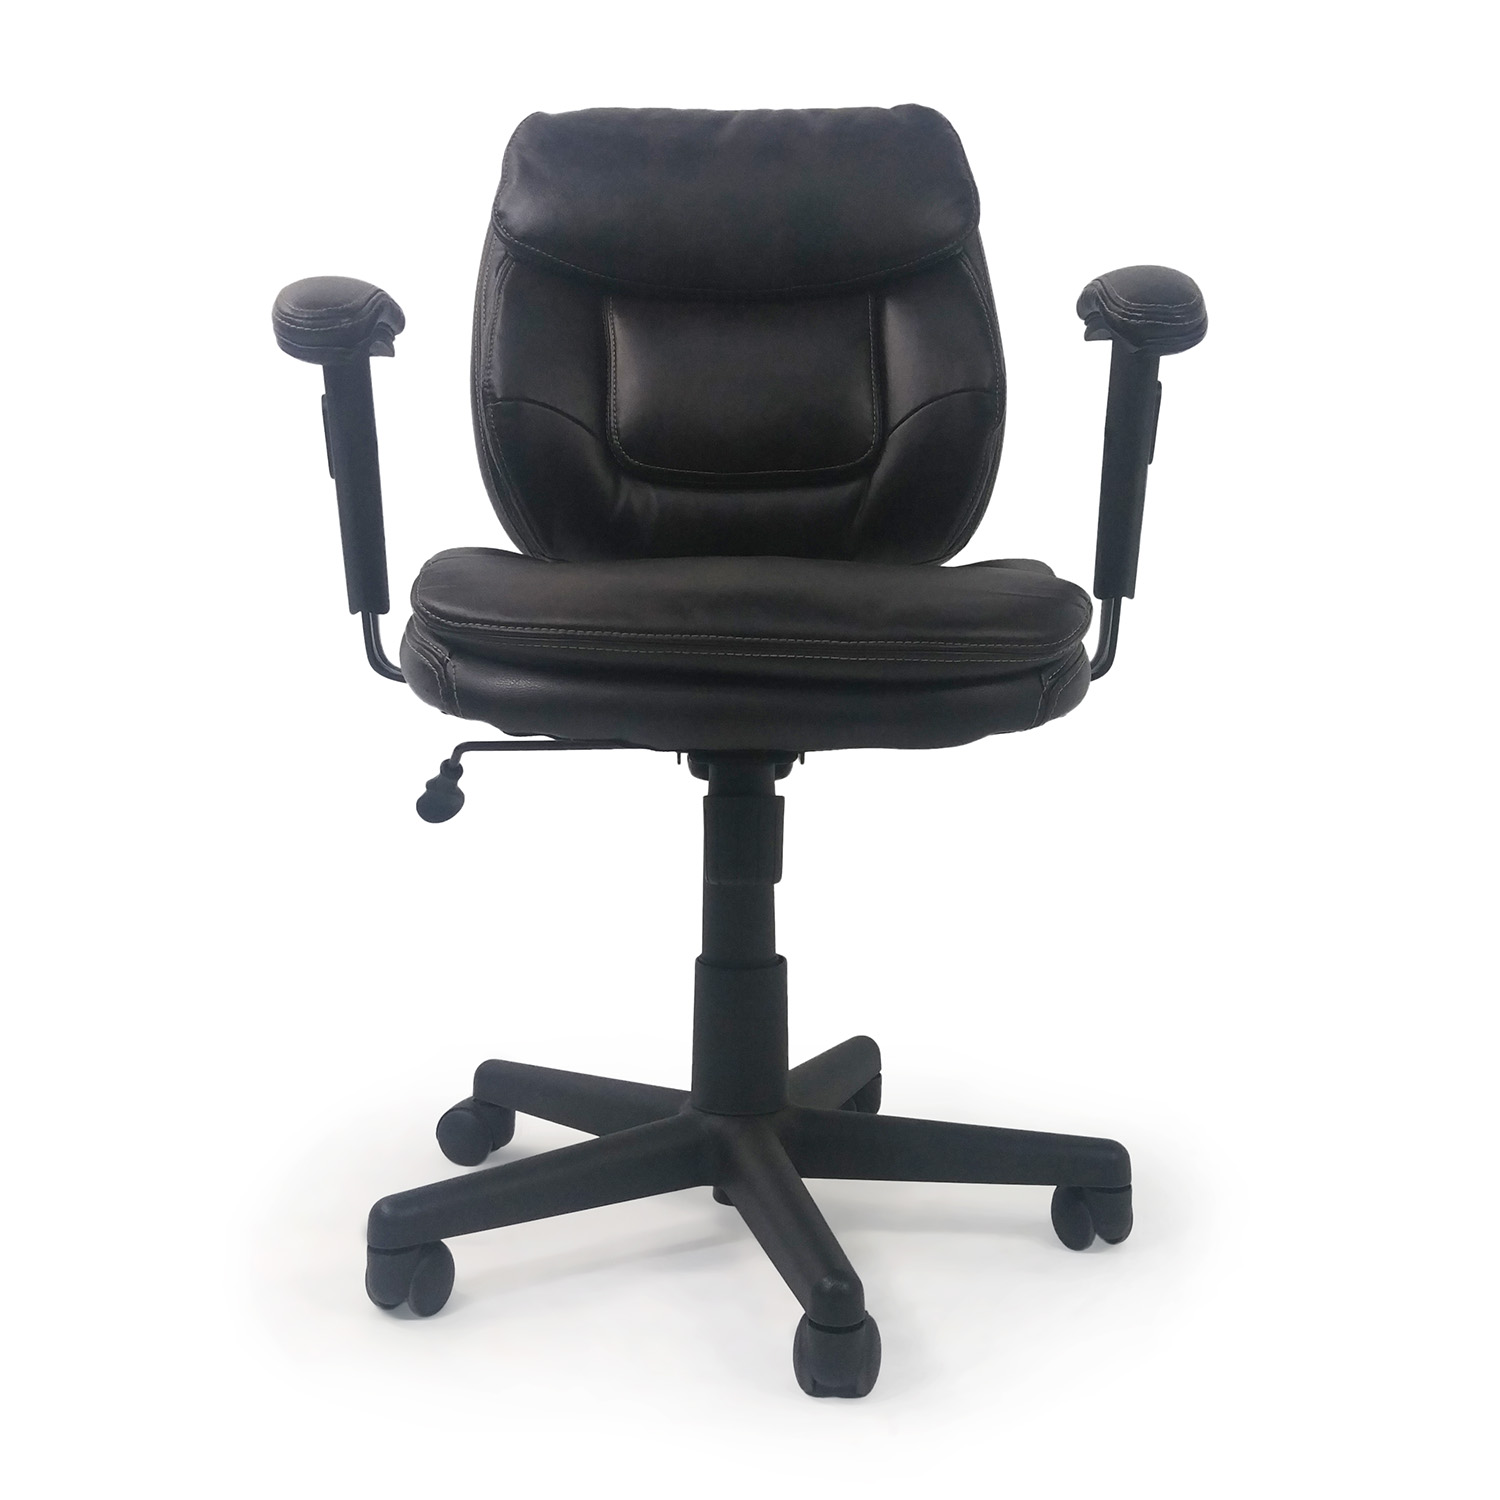 Plush Faux Leather Office Chair coupon